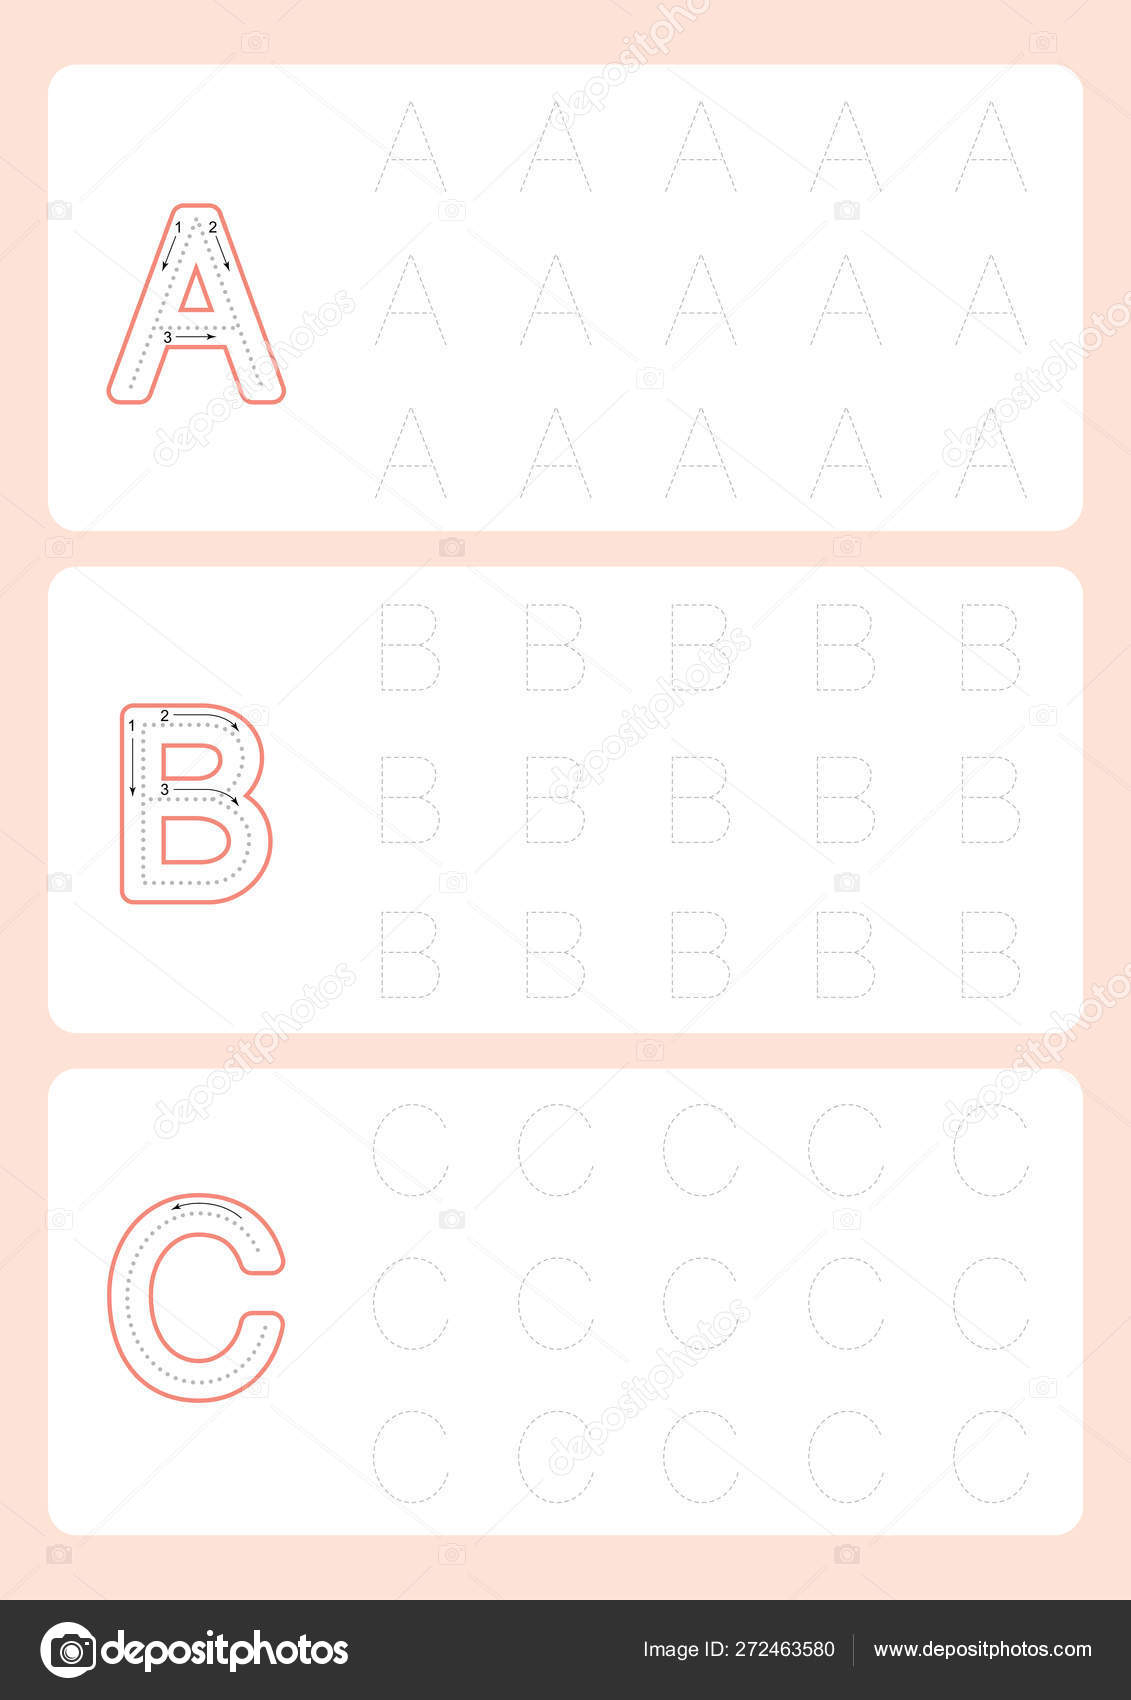 Kindergarten Tracing Letters Worksheets Alphabet Trace for Kindergarten Tracing Letters